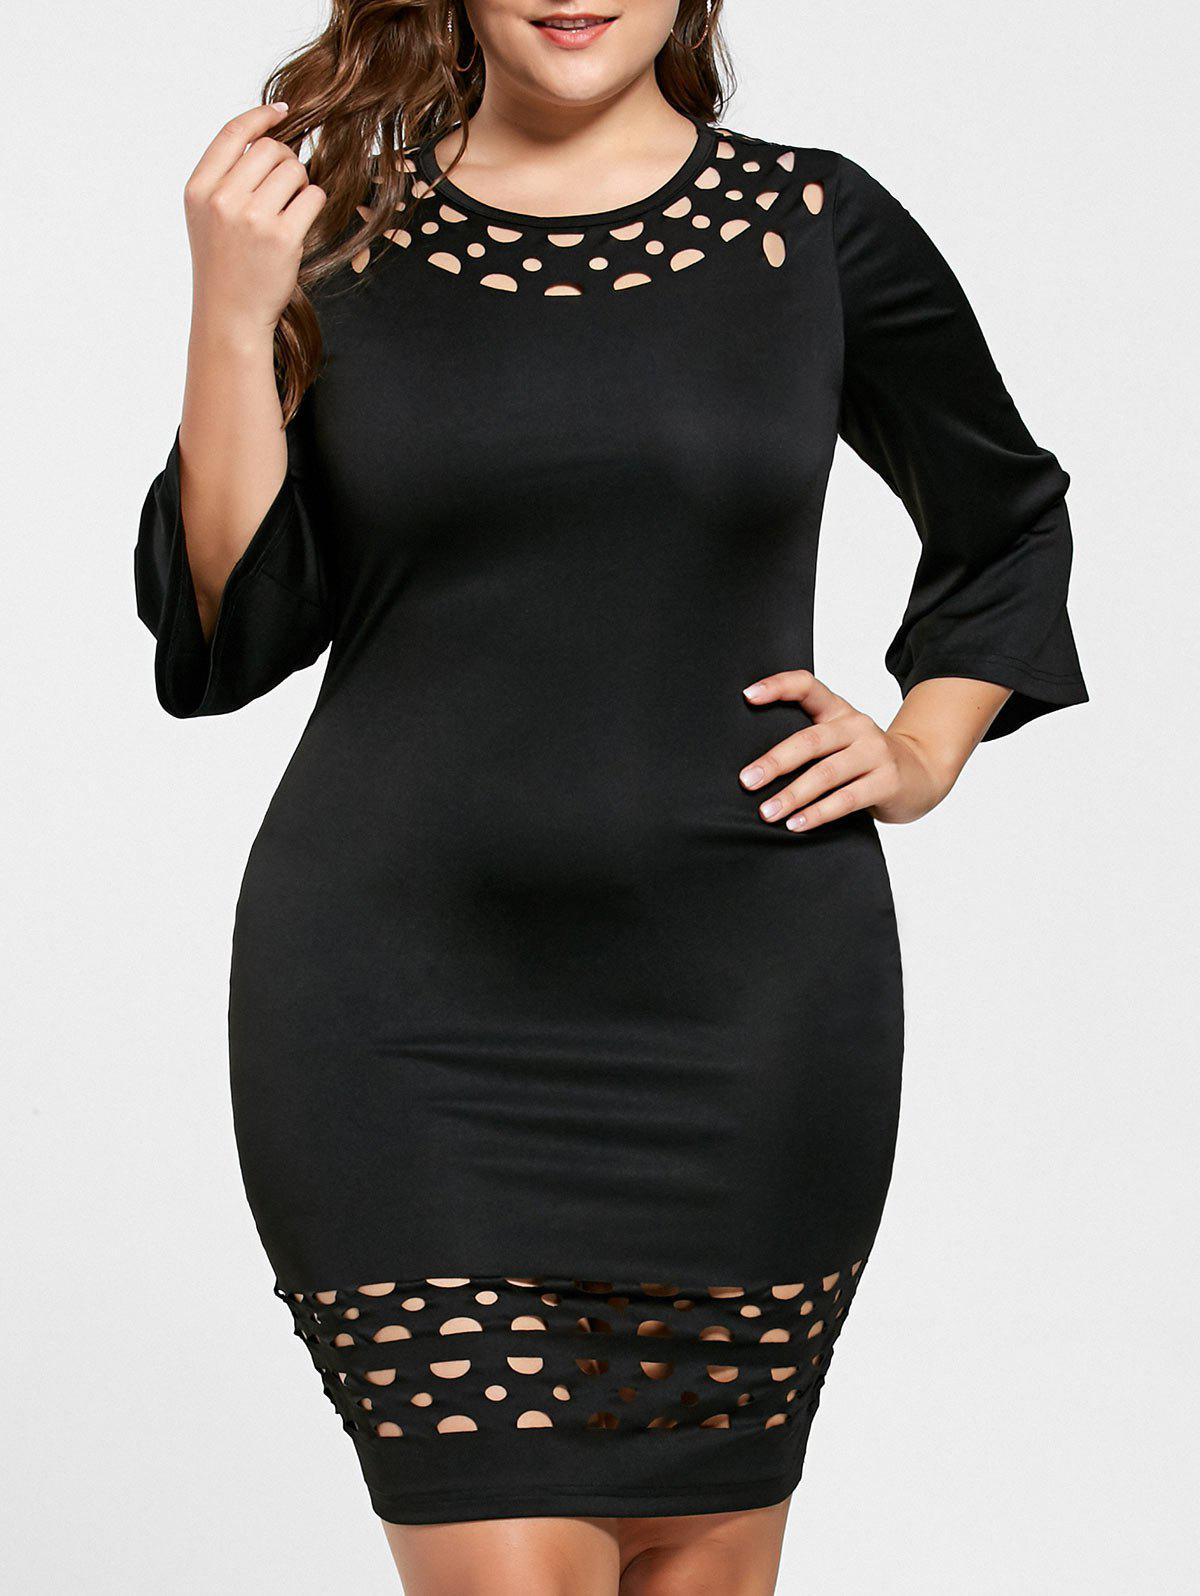 Plus Size Openwork Insert Tight DressWOMEN<br><br>Size: XL; Color: BLACK; Style: Brief; Material: Polyester,Spandex; Silhouette: Sheath; Dresses Length: Knee-Length; Neckline: Round Collar; Sleeve Length: 3/4 Length Sleeves; Pattern Type: Solid Color; With Belt: No; Season: Fall,Spring,Summer; Weight: 0.2700kg; Package Contents: 1 x Dress;